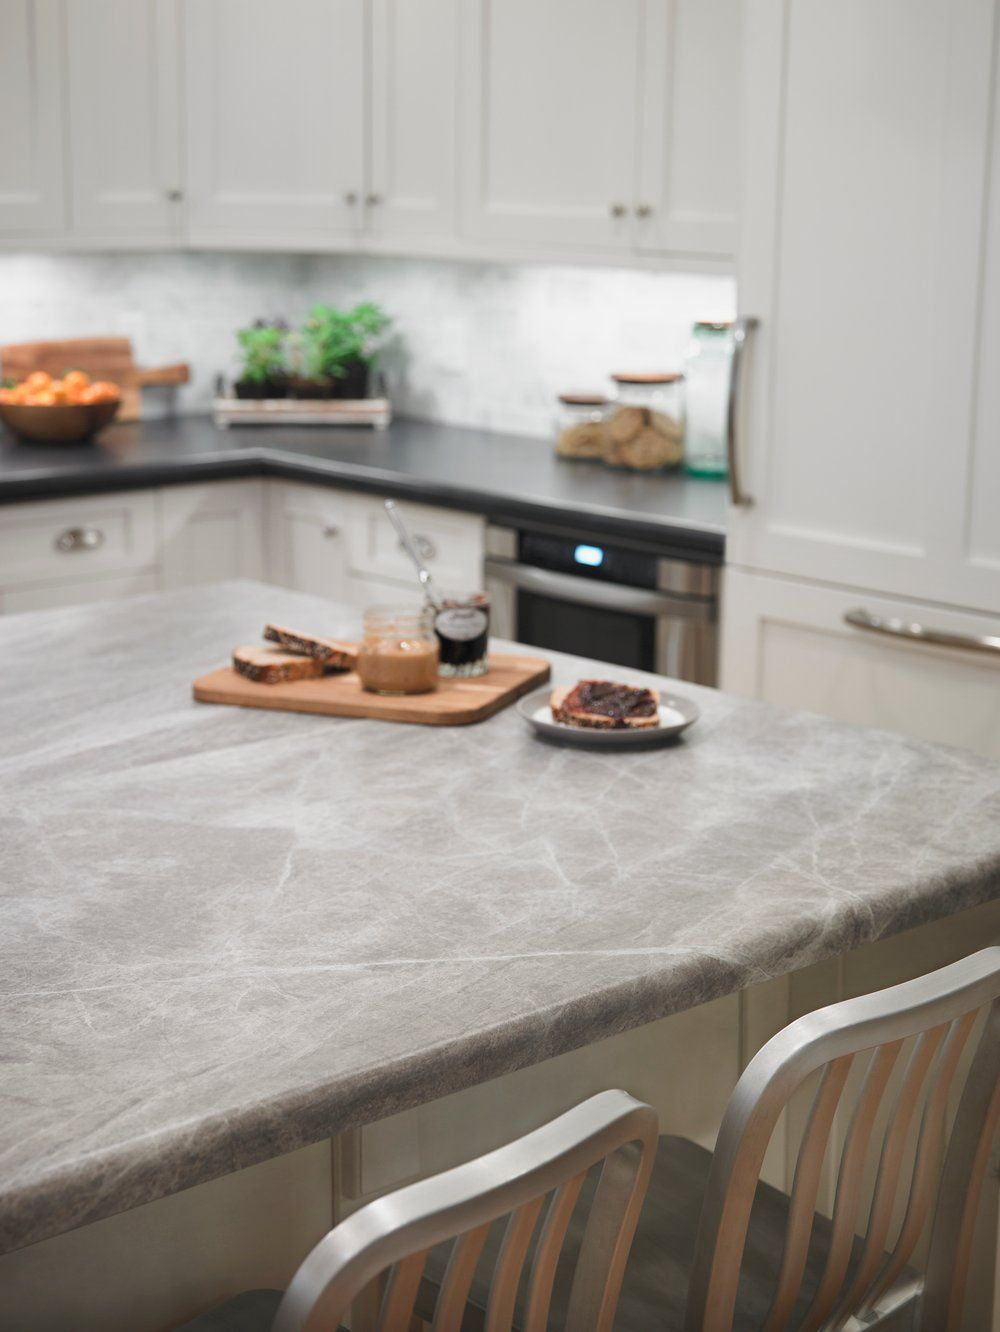 Picture Packing Your Kid S Lunches In This Serene Kitchen Featuring A Soapstone Kitchen Countertops Kitchen Countertops Laminate Replacing Kitchen Countertops